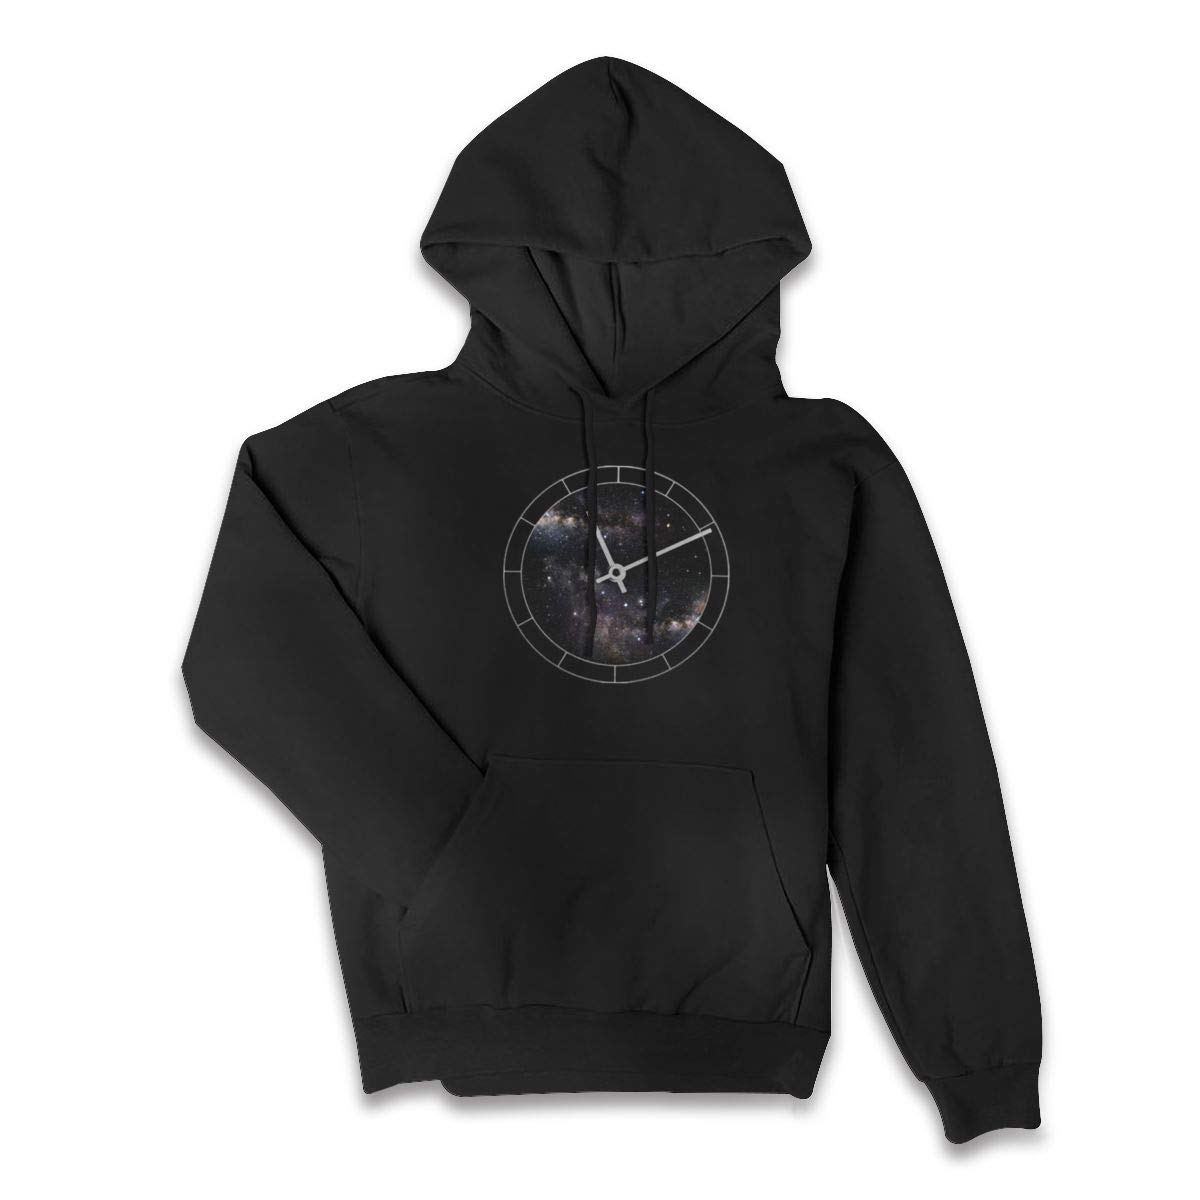 Lponvx Time and Space Womens Casual Zip-up Hooded Sweatshirt with Drawstring Hood